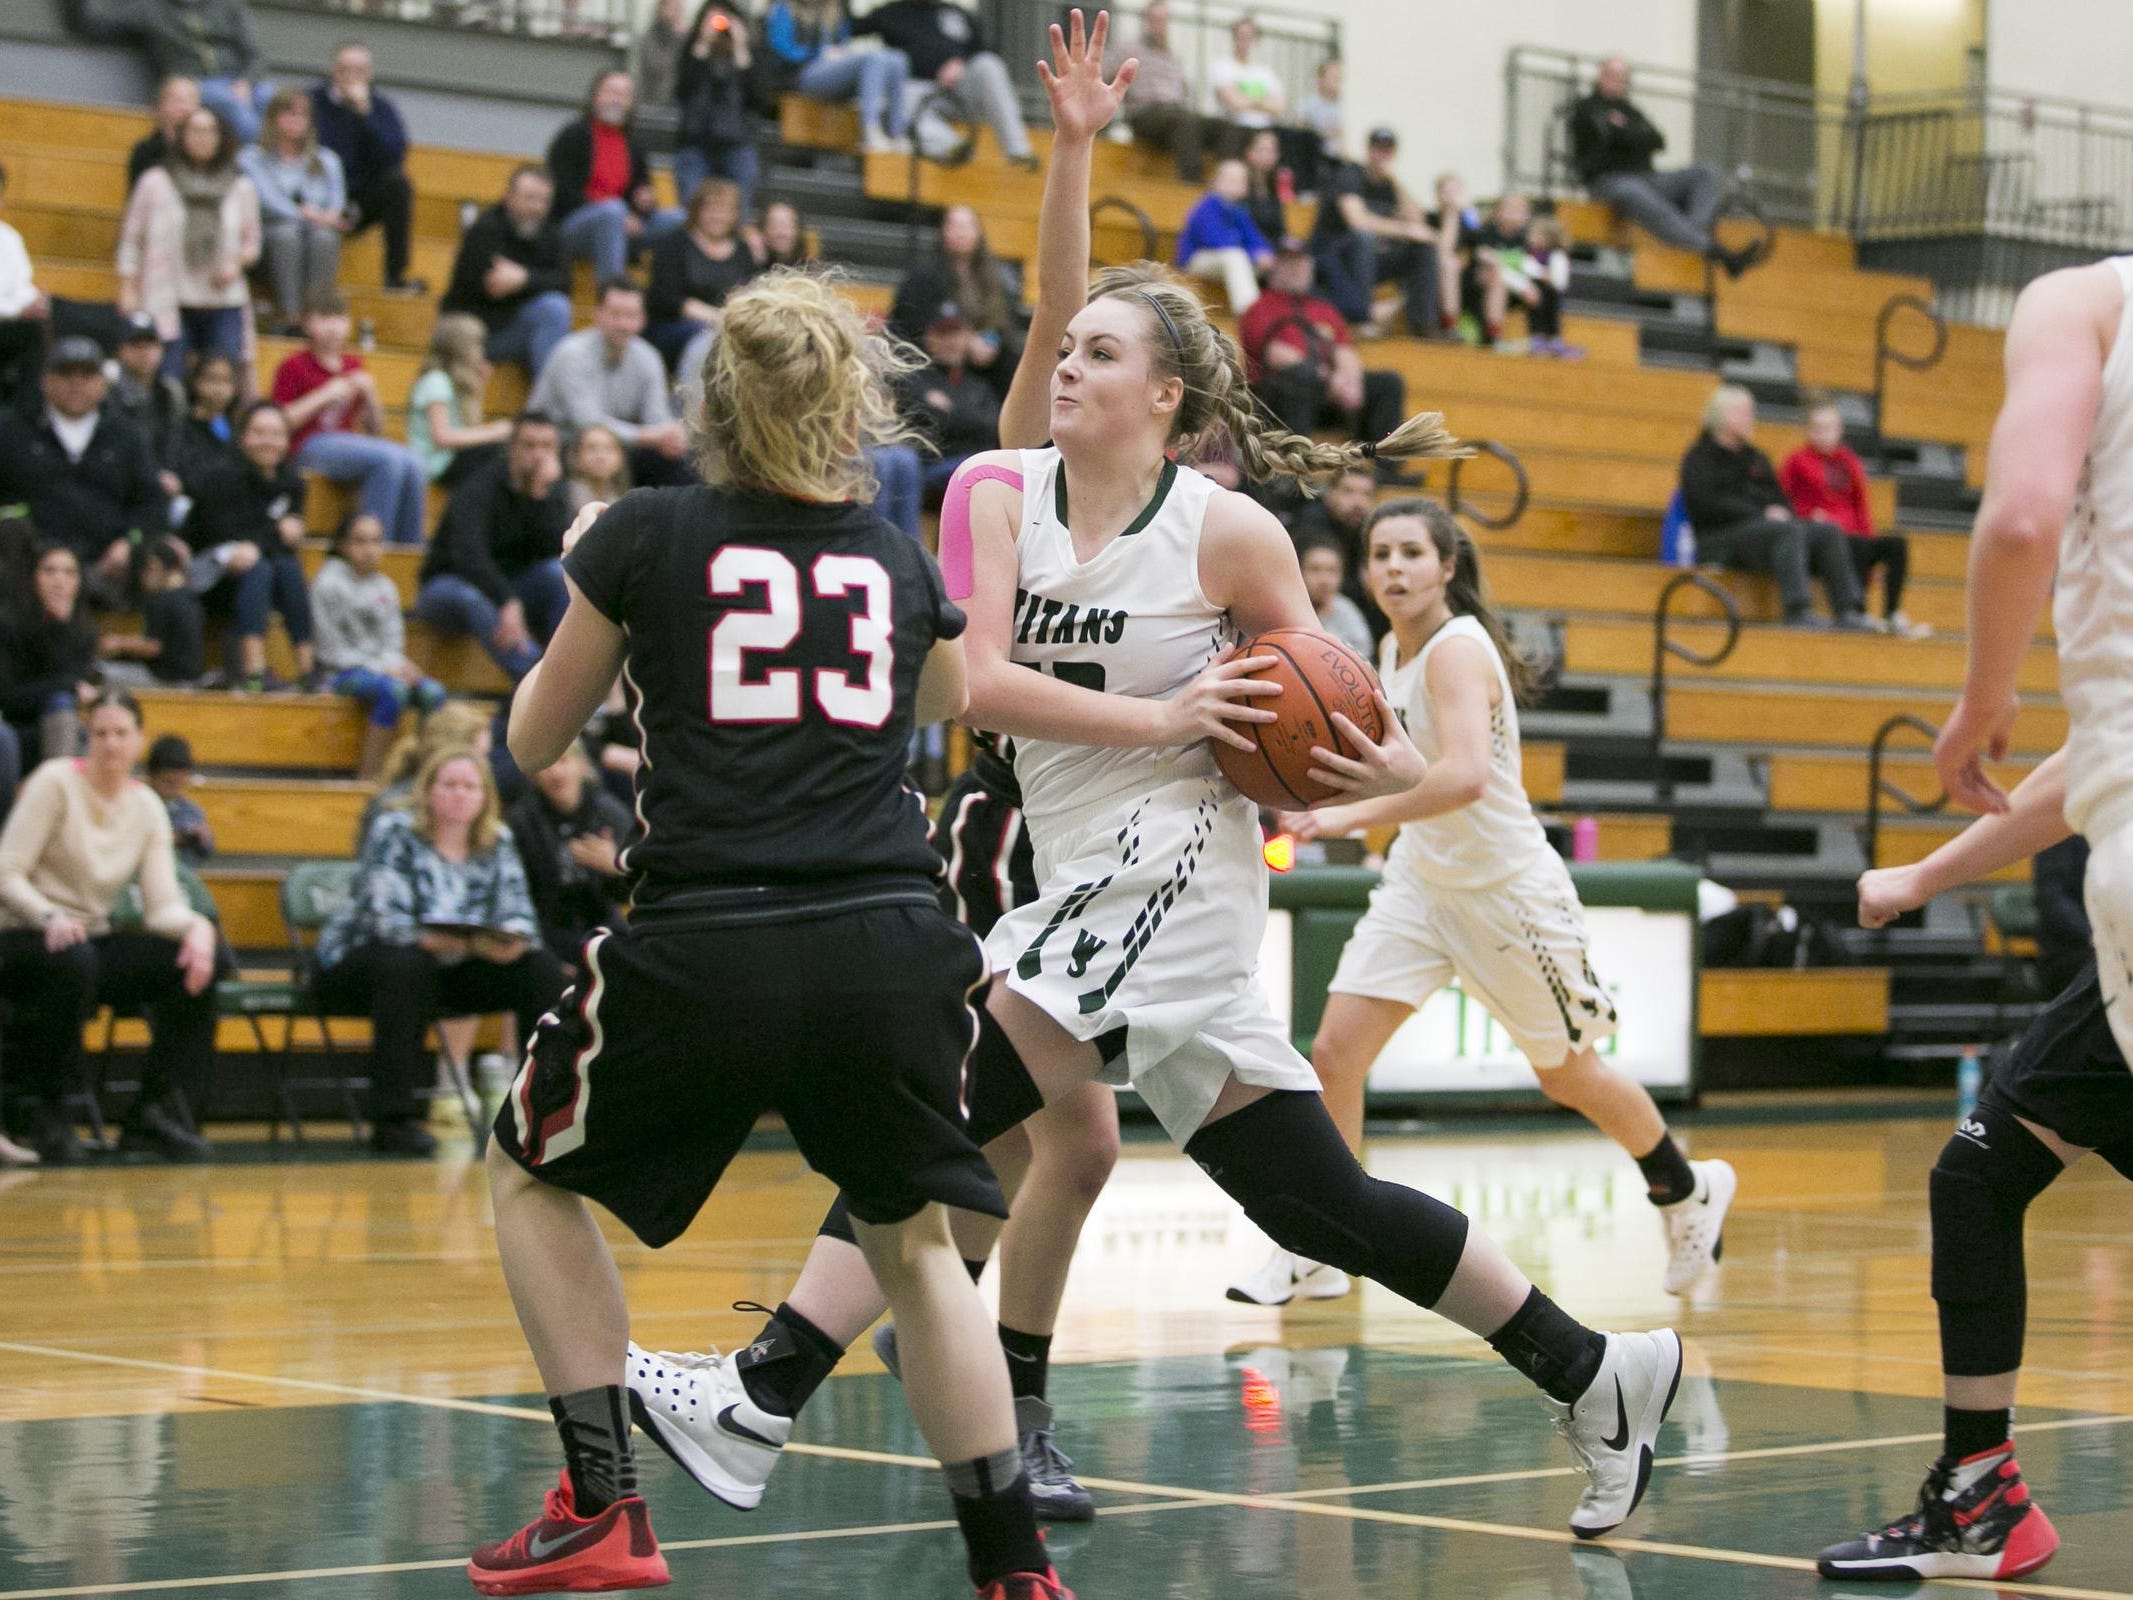 West Salem sophomore Brenna Redman drives towards the basket in a game against North Medford at West Salem High School on Tuesday, March 1, 2016. West Salem won the OSAA round one playoff game 58-55 in overtime.